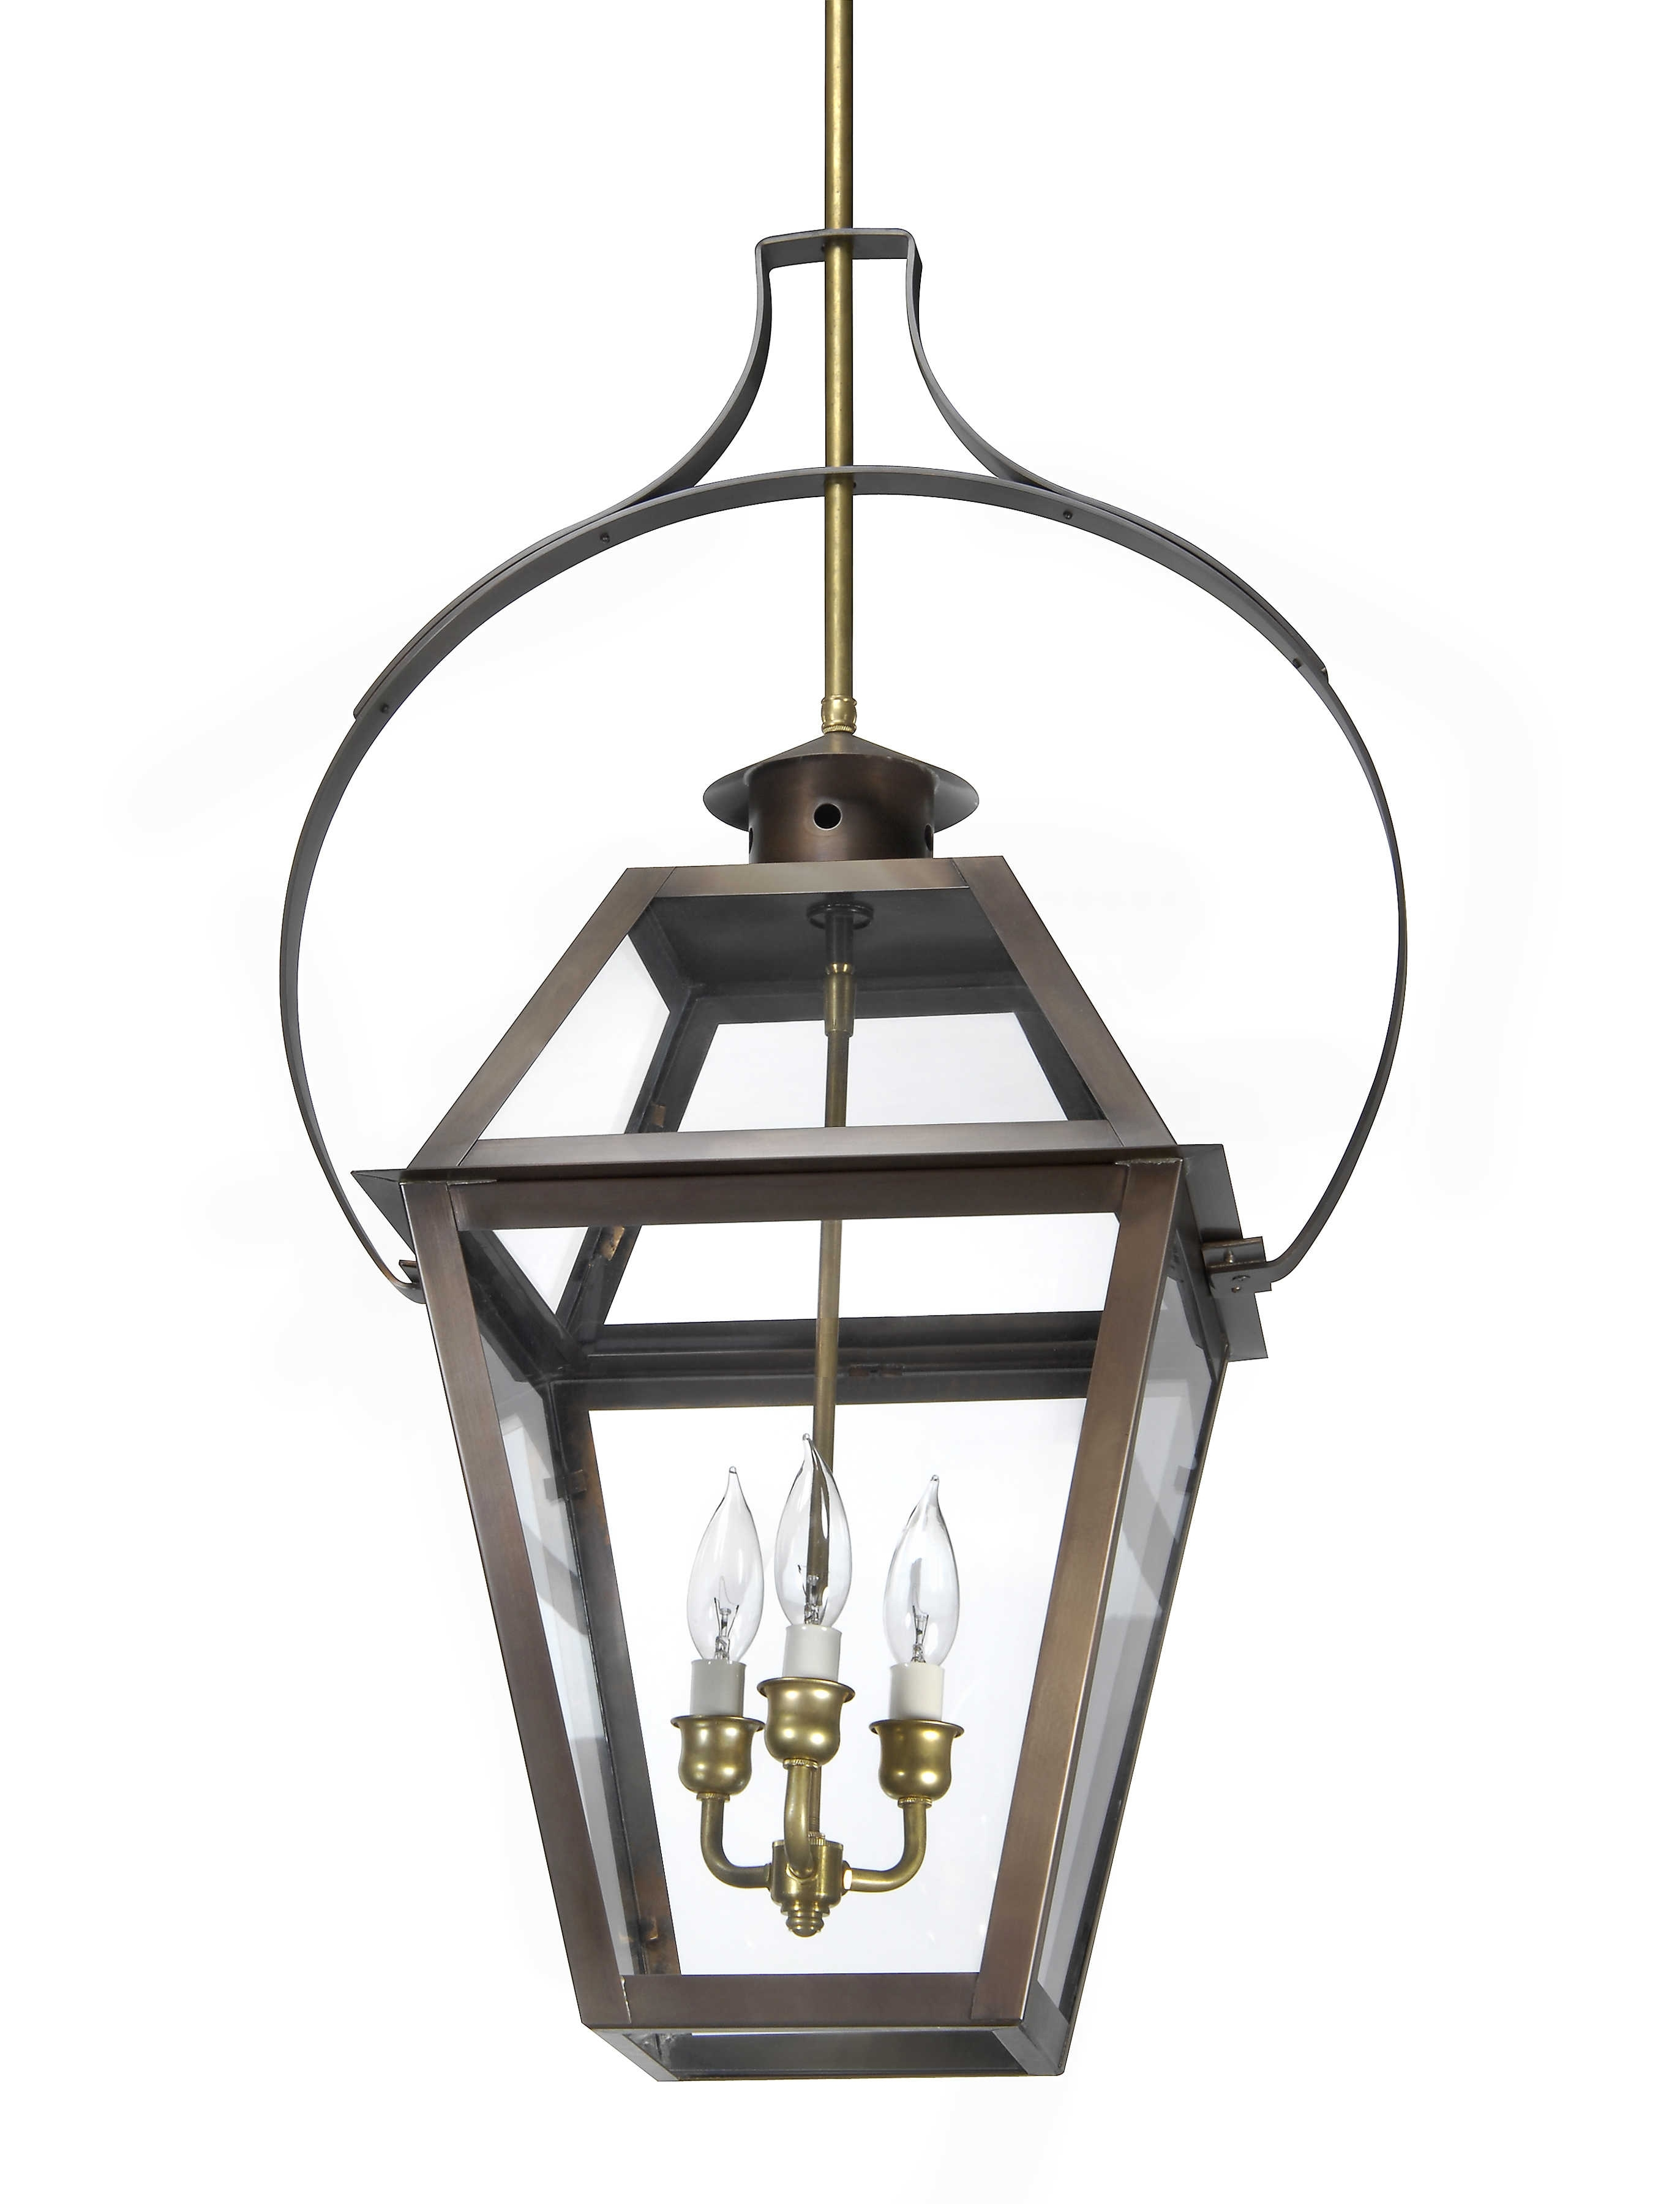 Ch 23 Hanging Yoke Light– Lantern & Scroll Intended For Well Liked Outdoor Electric Lanterns (View 7 of 20)